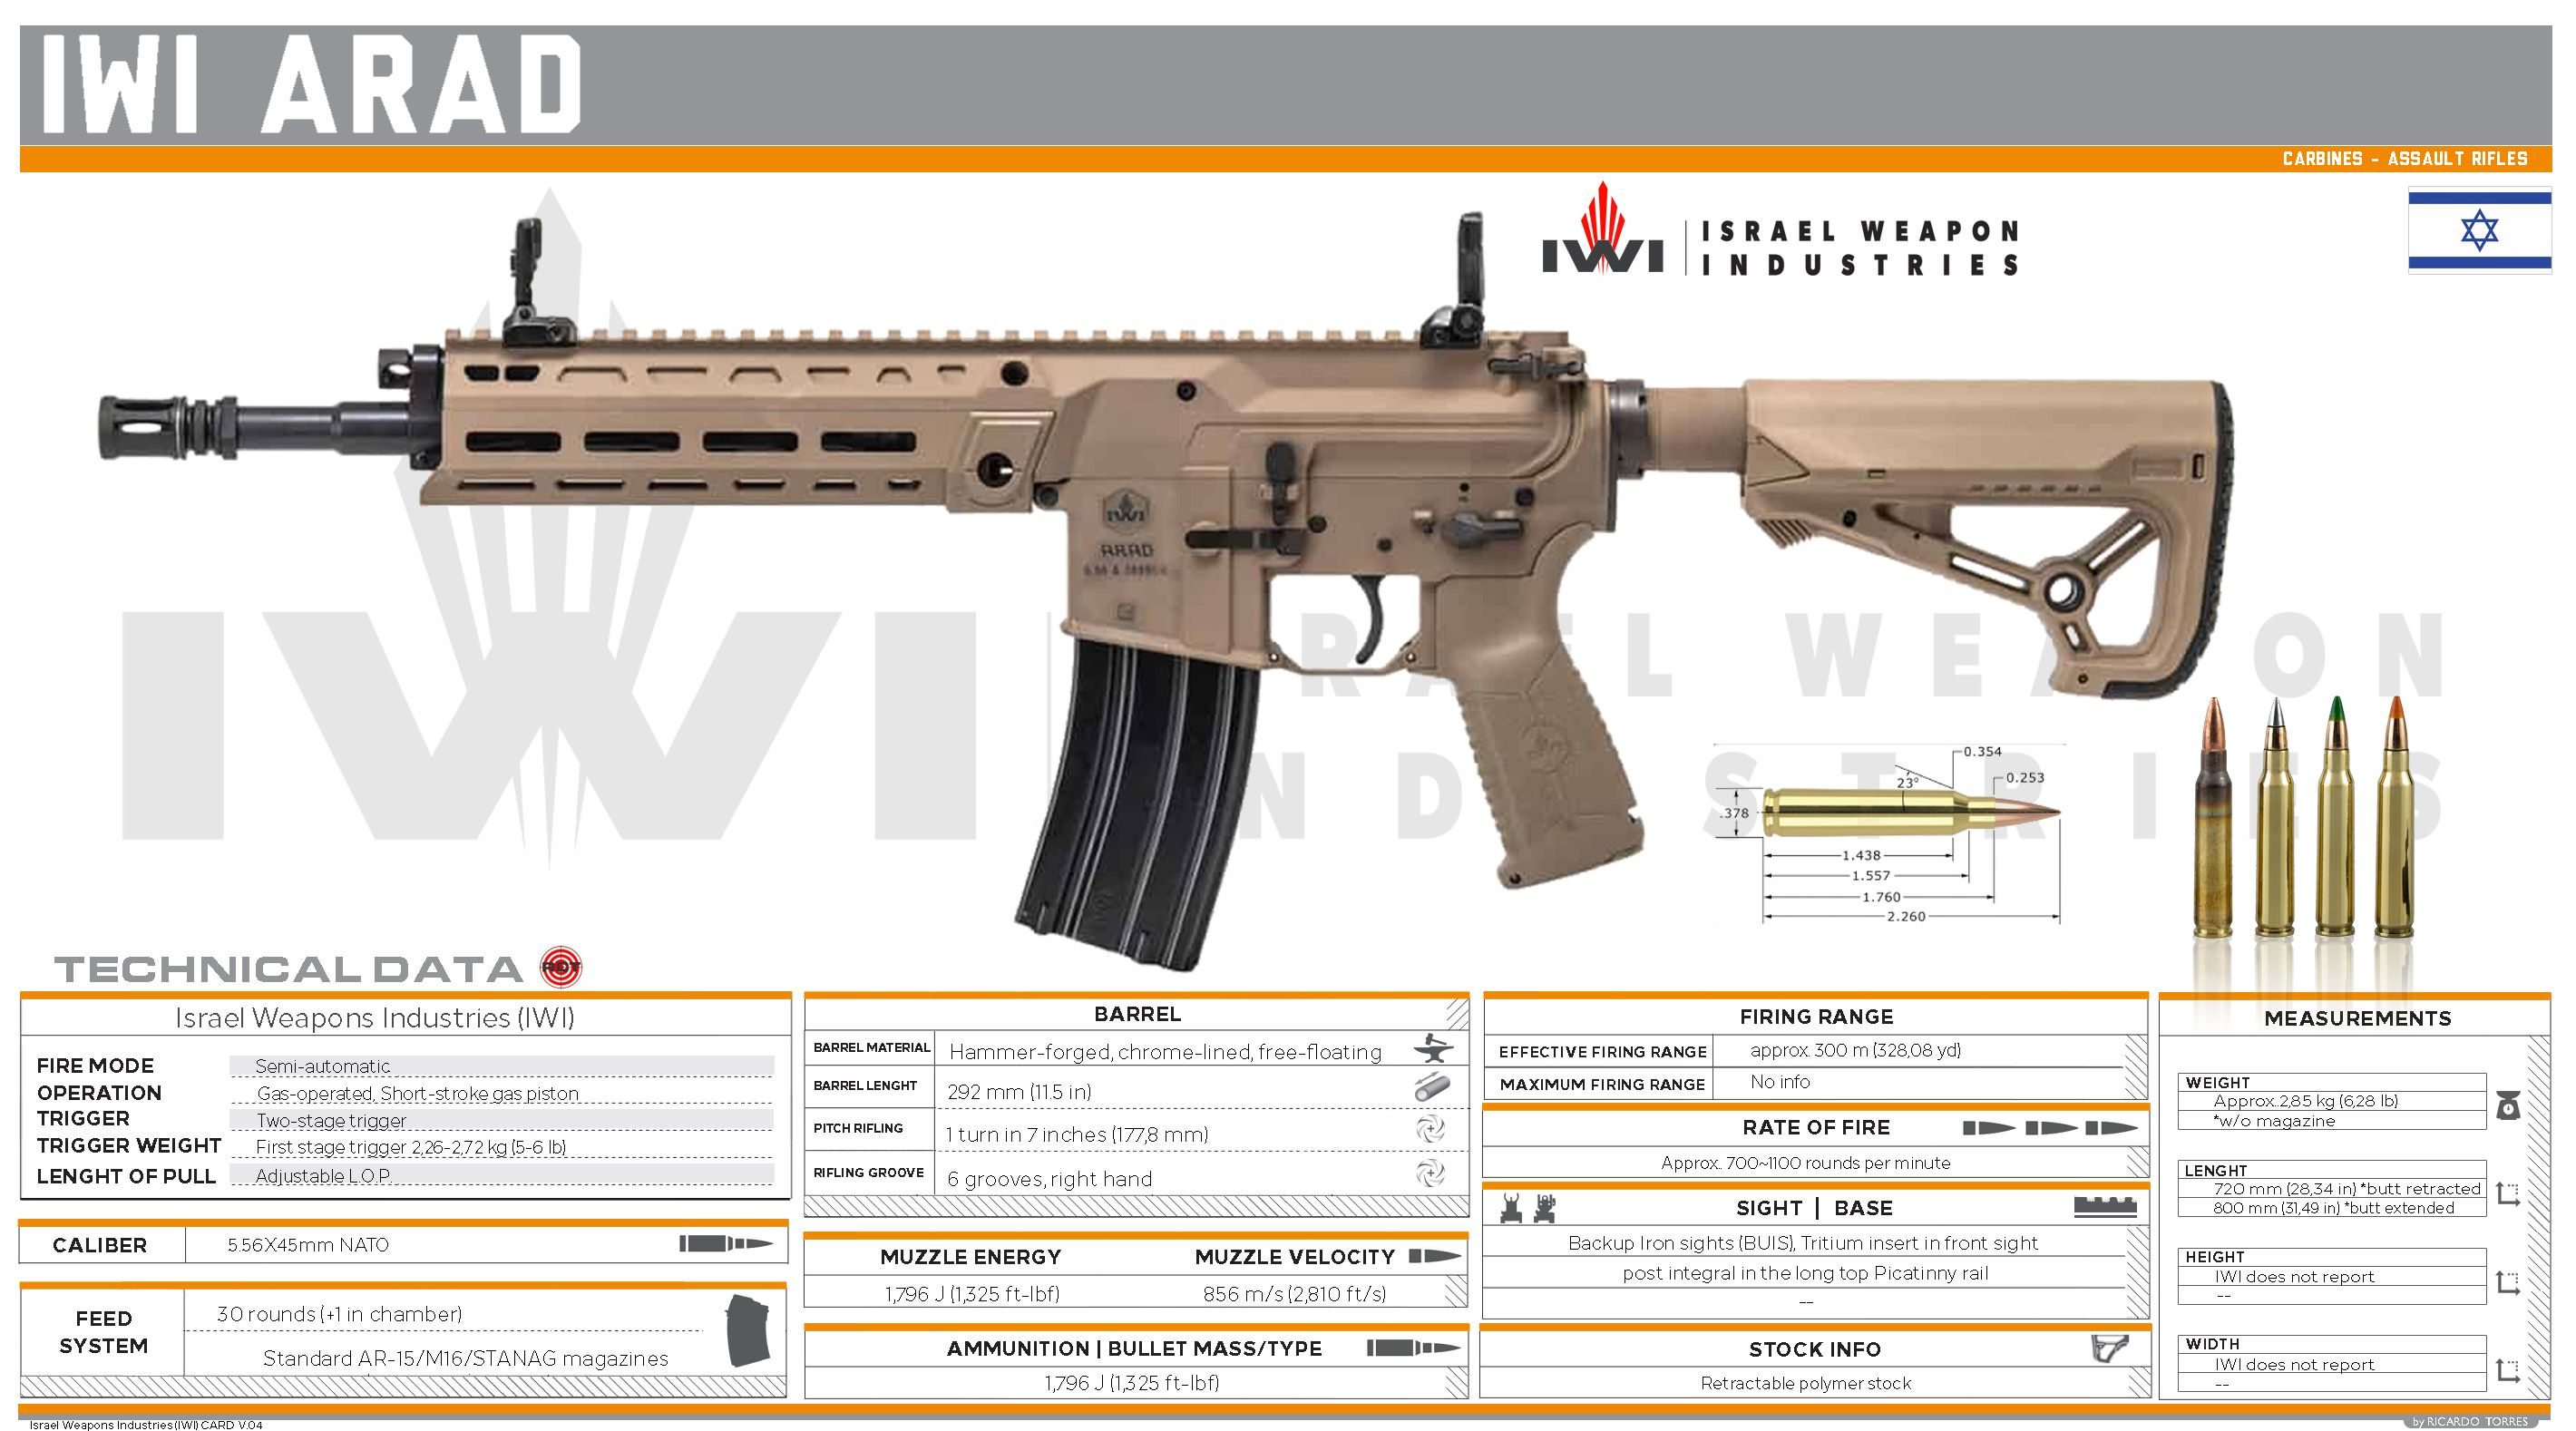 Pin on Israel Weapon Industries (IWI)